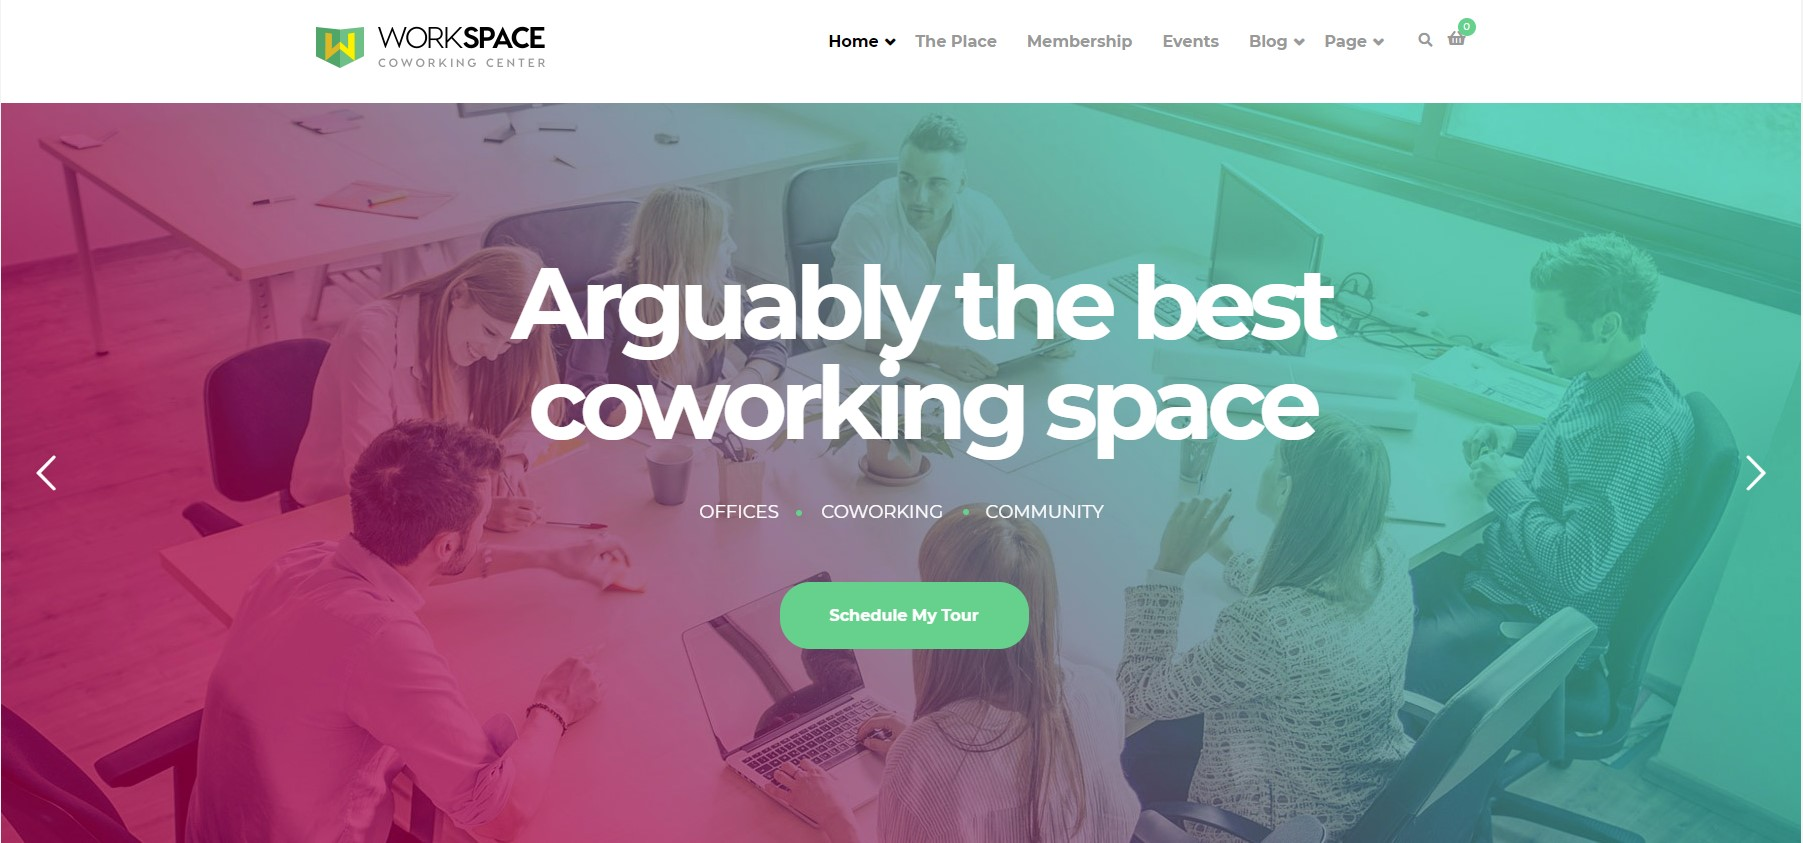 Workspace – Creative Office Space WordPress Theme